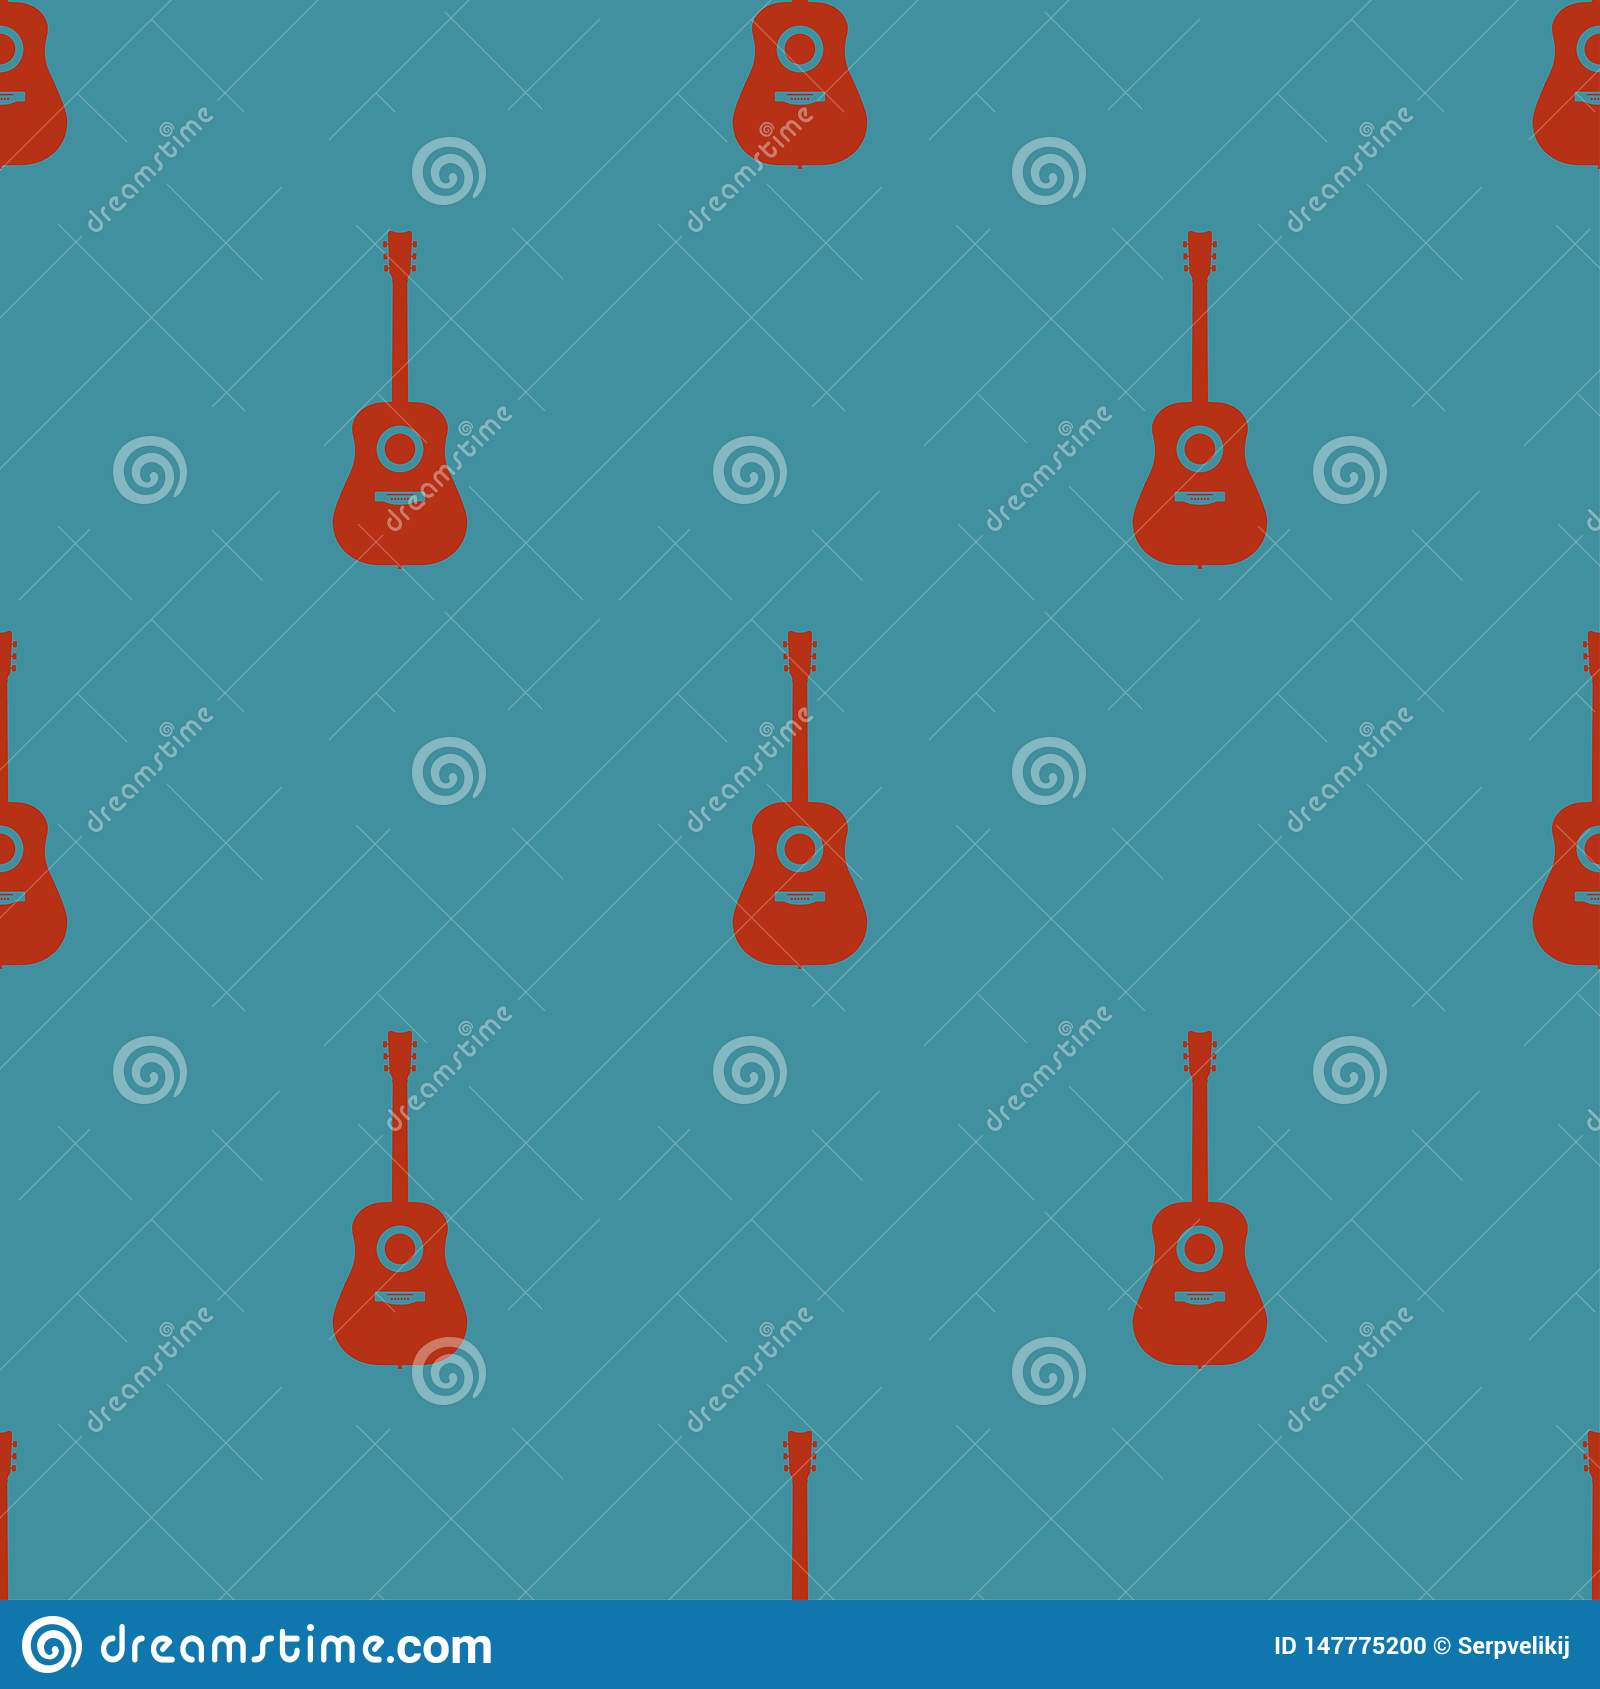 Colored seamless pattern with guitars on a blue background vector illustration